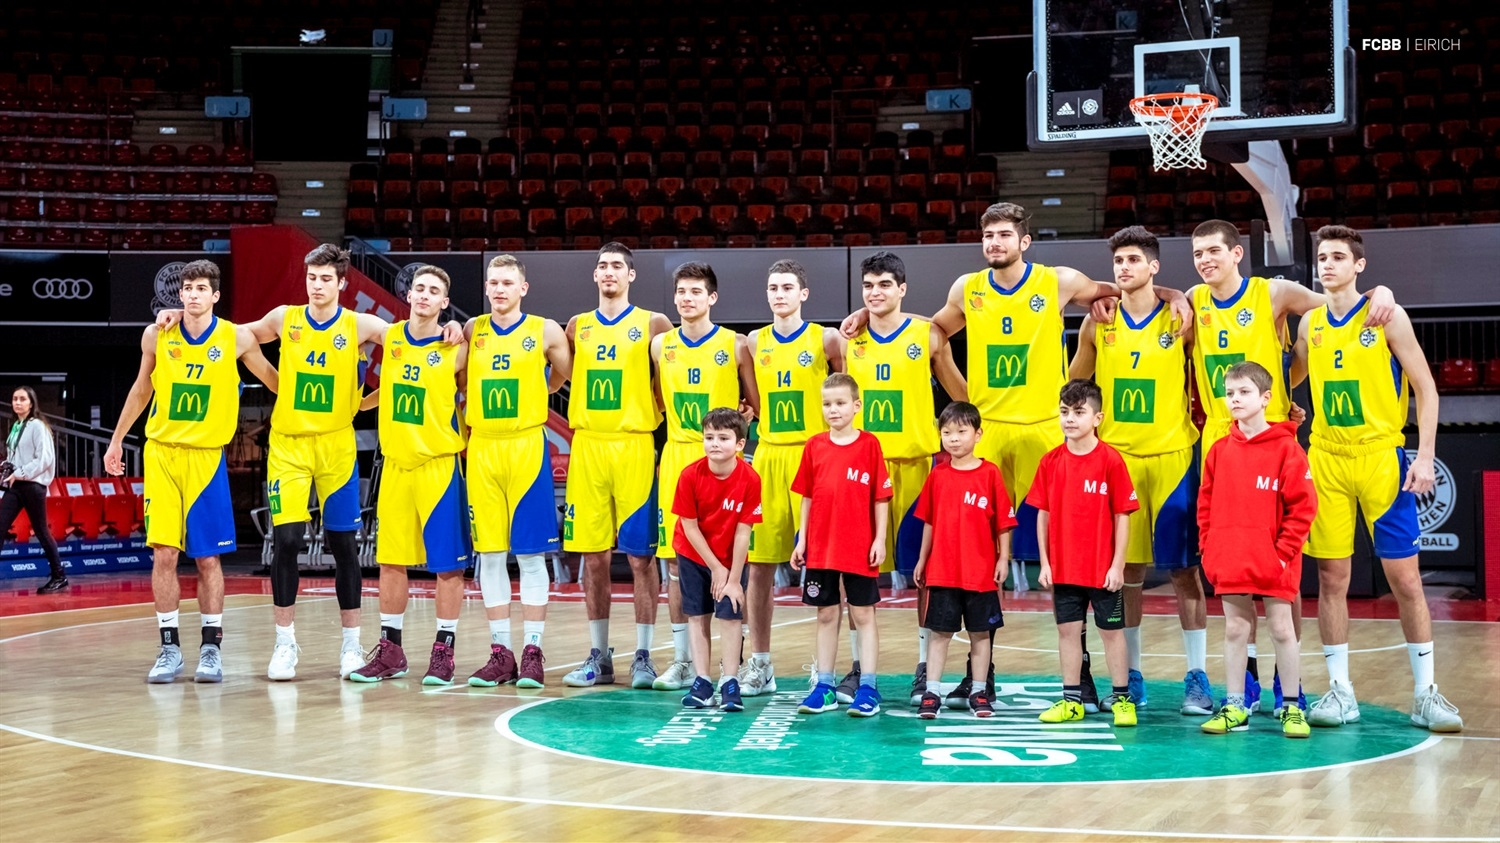 Players U18 Maccabi Teddy Tel Aviv - ANGT Munich 2019 (photo FCBB - Eirich) JT18